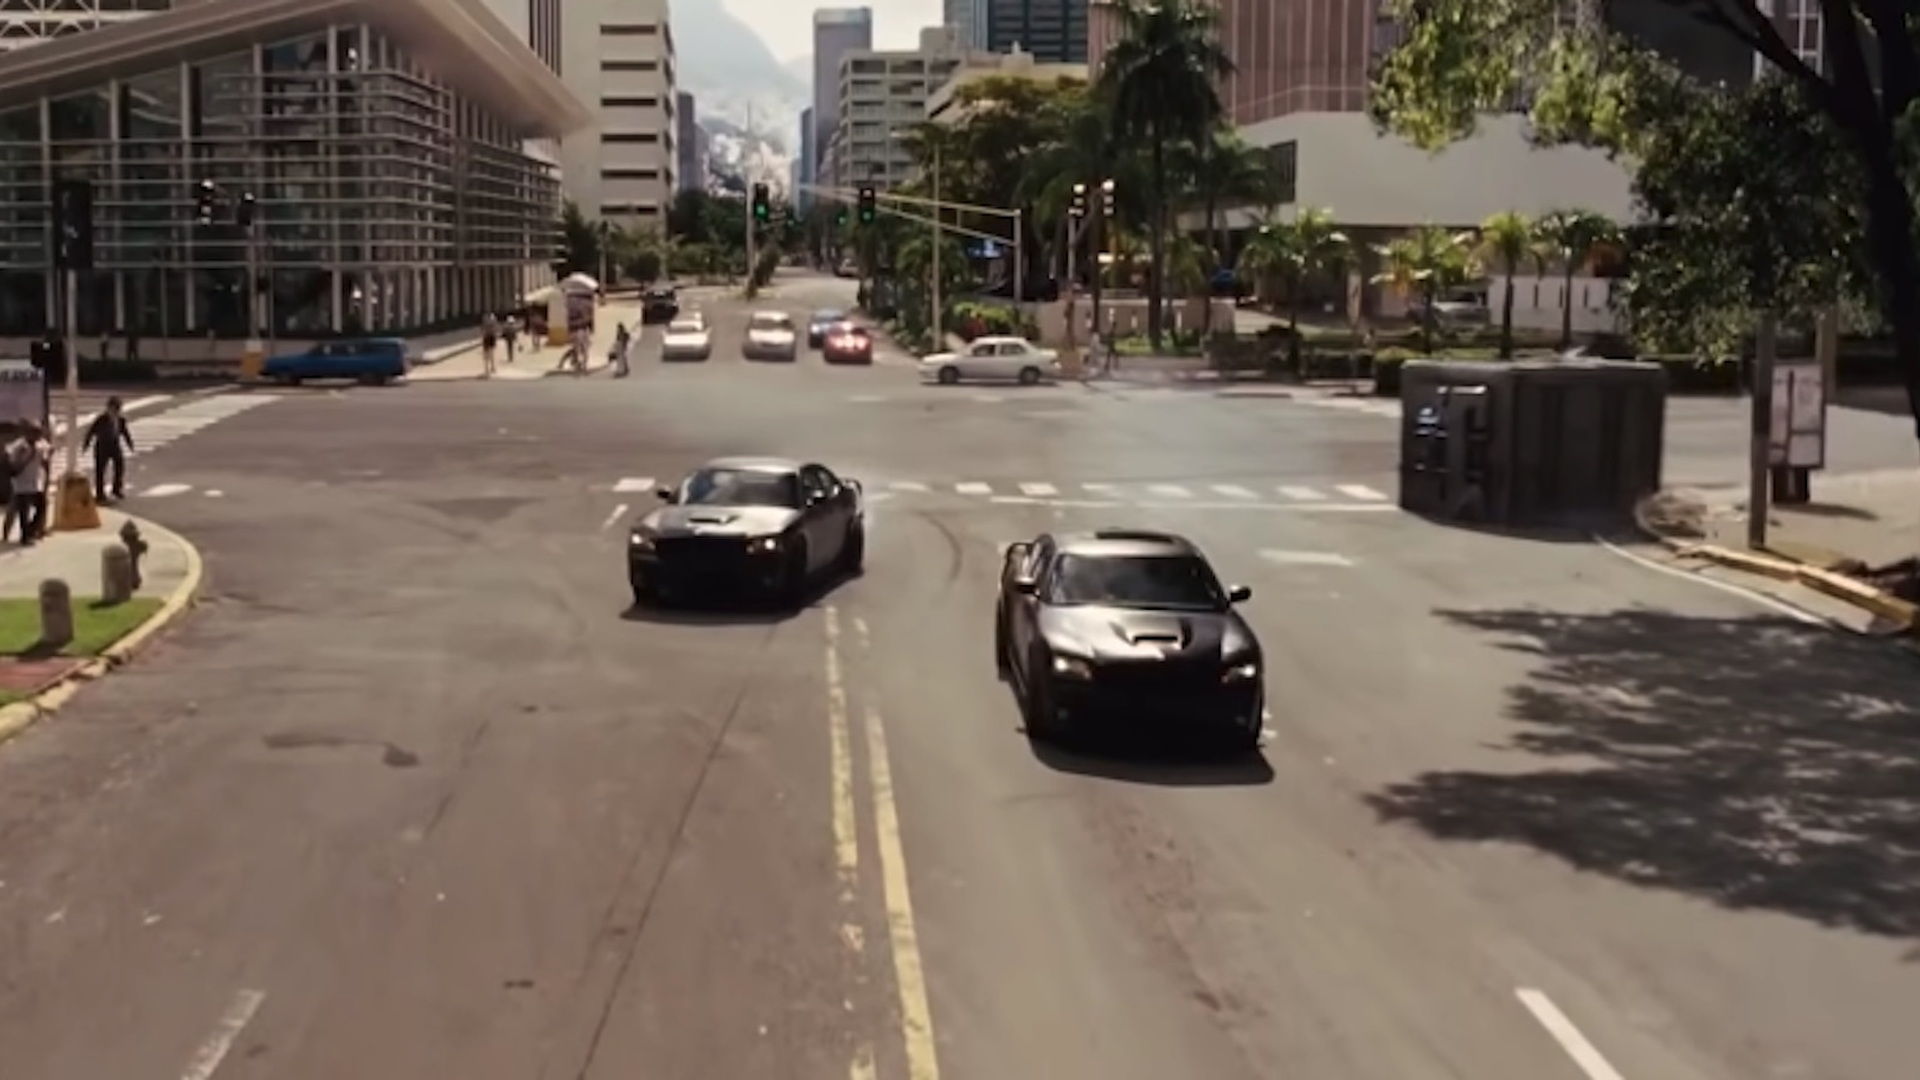 'Fast Five' vault chase scene